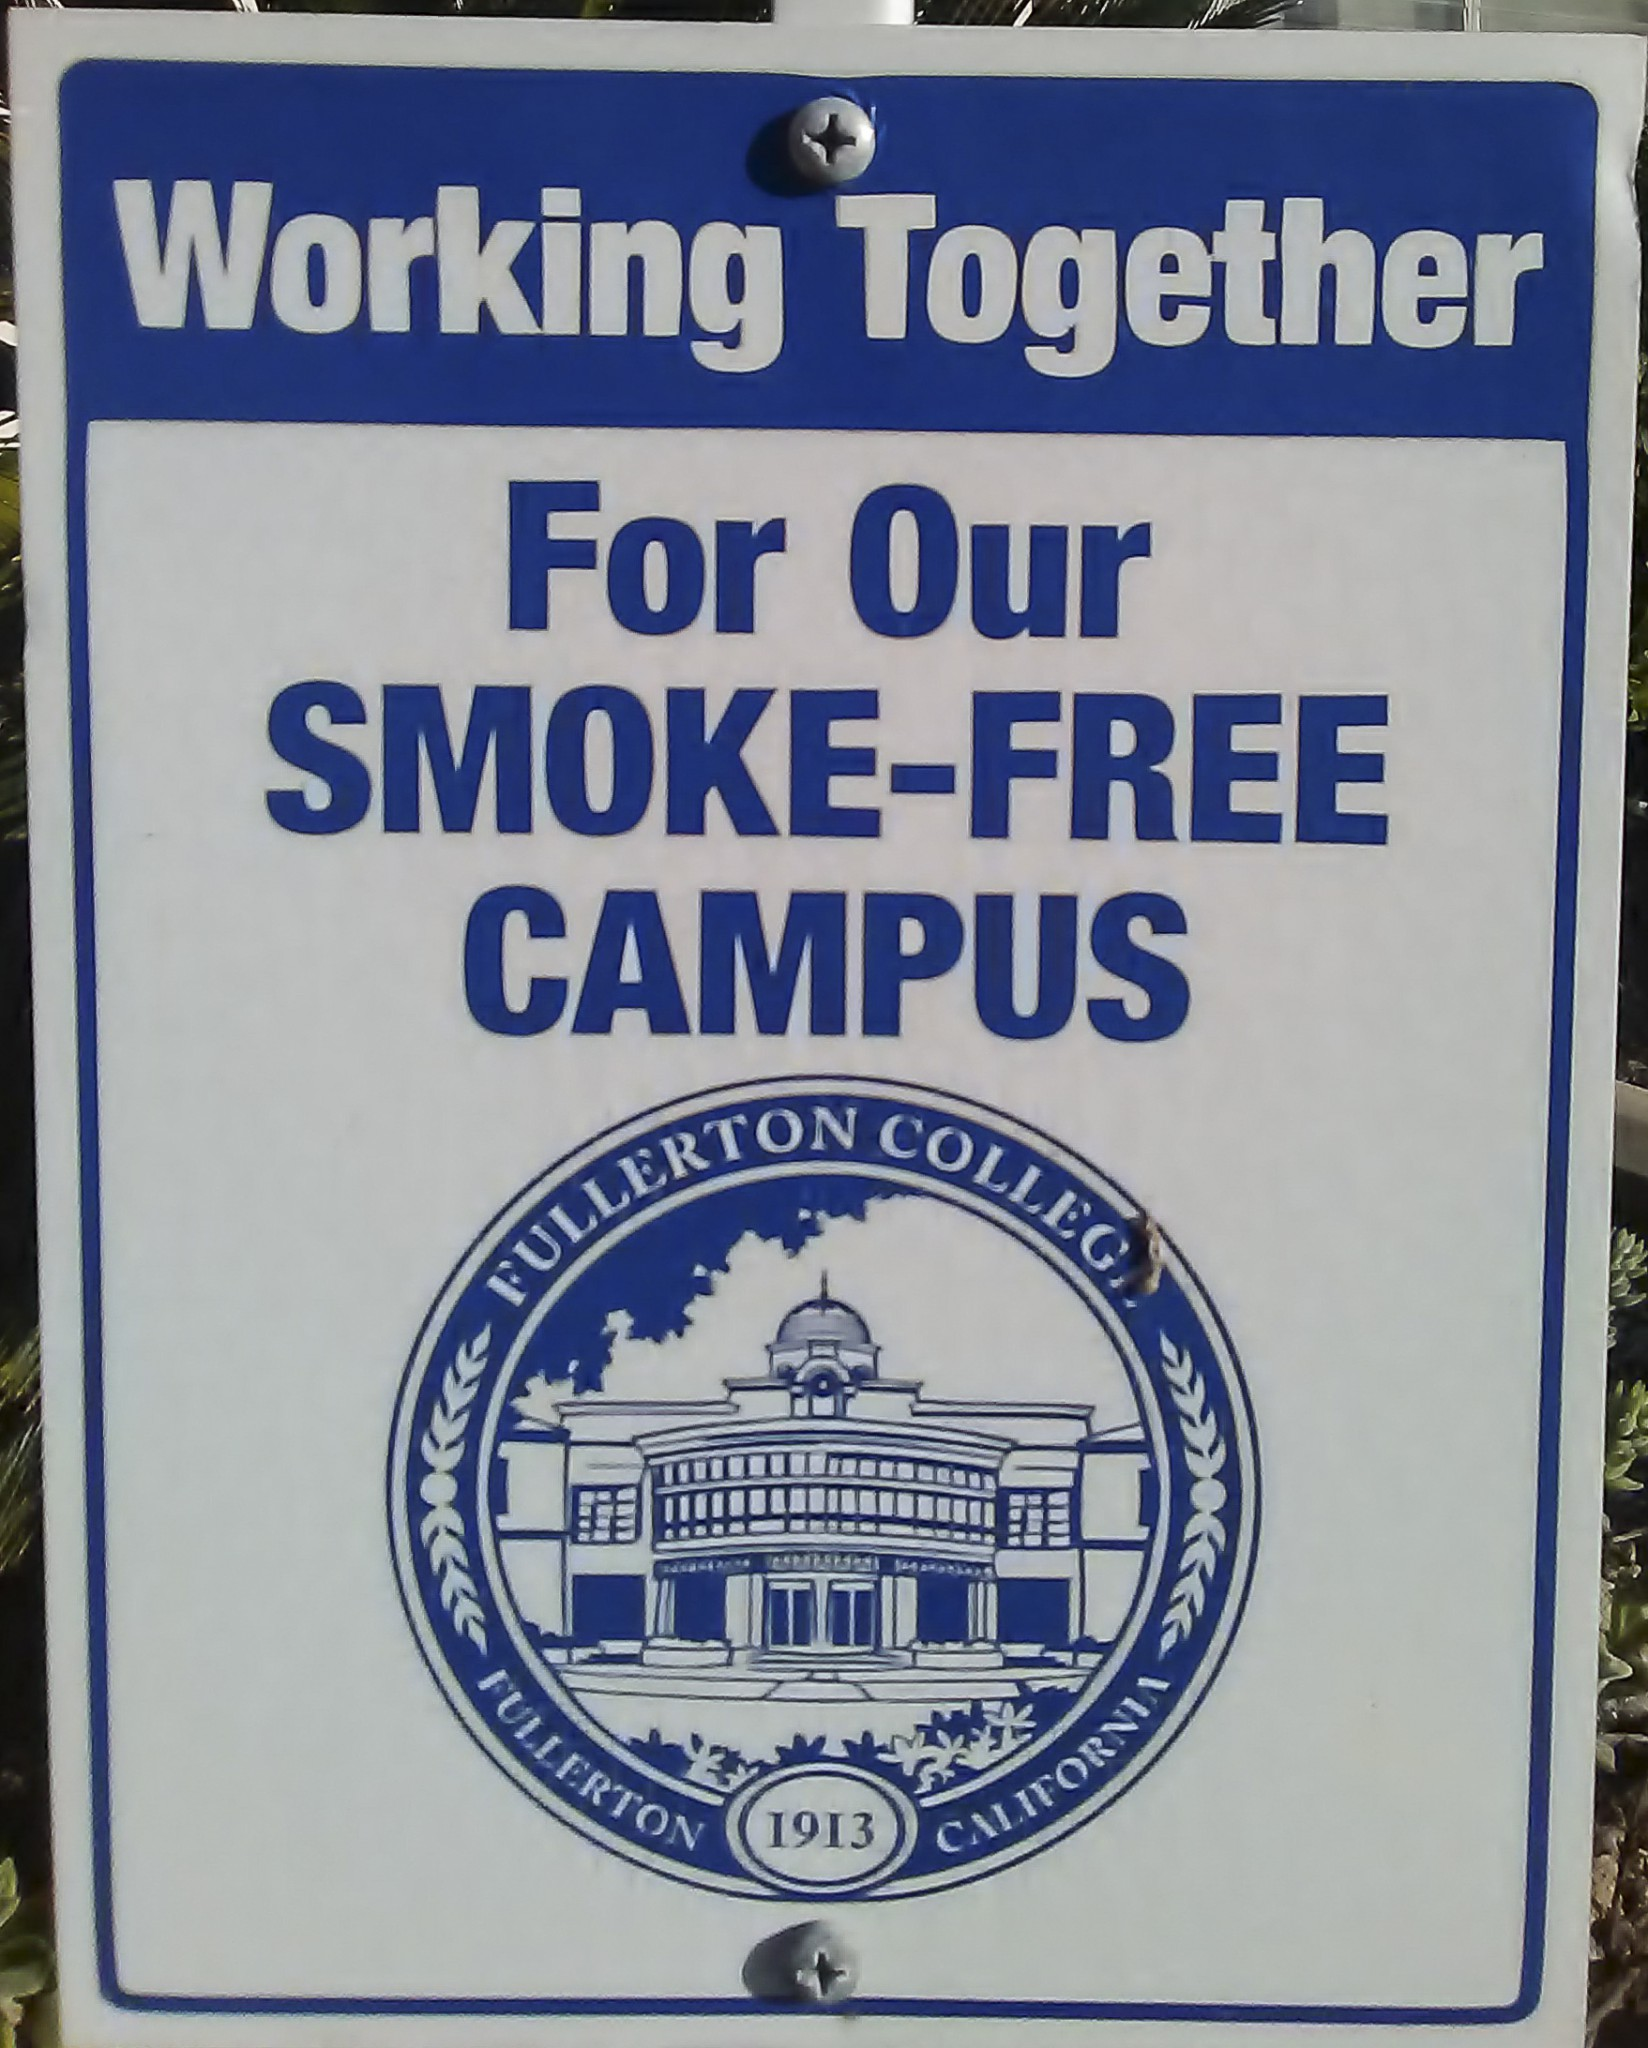 smoking on college campus Campuses think because they are banning smoking that people will stop smoking on campus this is an unlikely occurrence eric koonce, a graduate of armstrong state university, realized that exact problem while he was working with the university to ban smoking on campus.